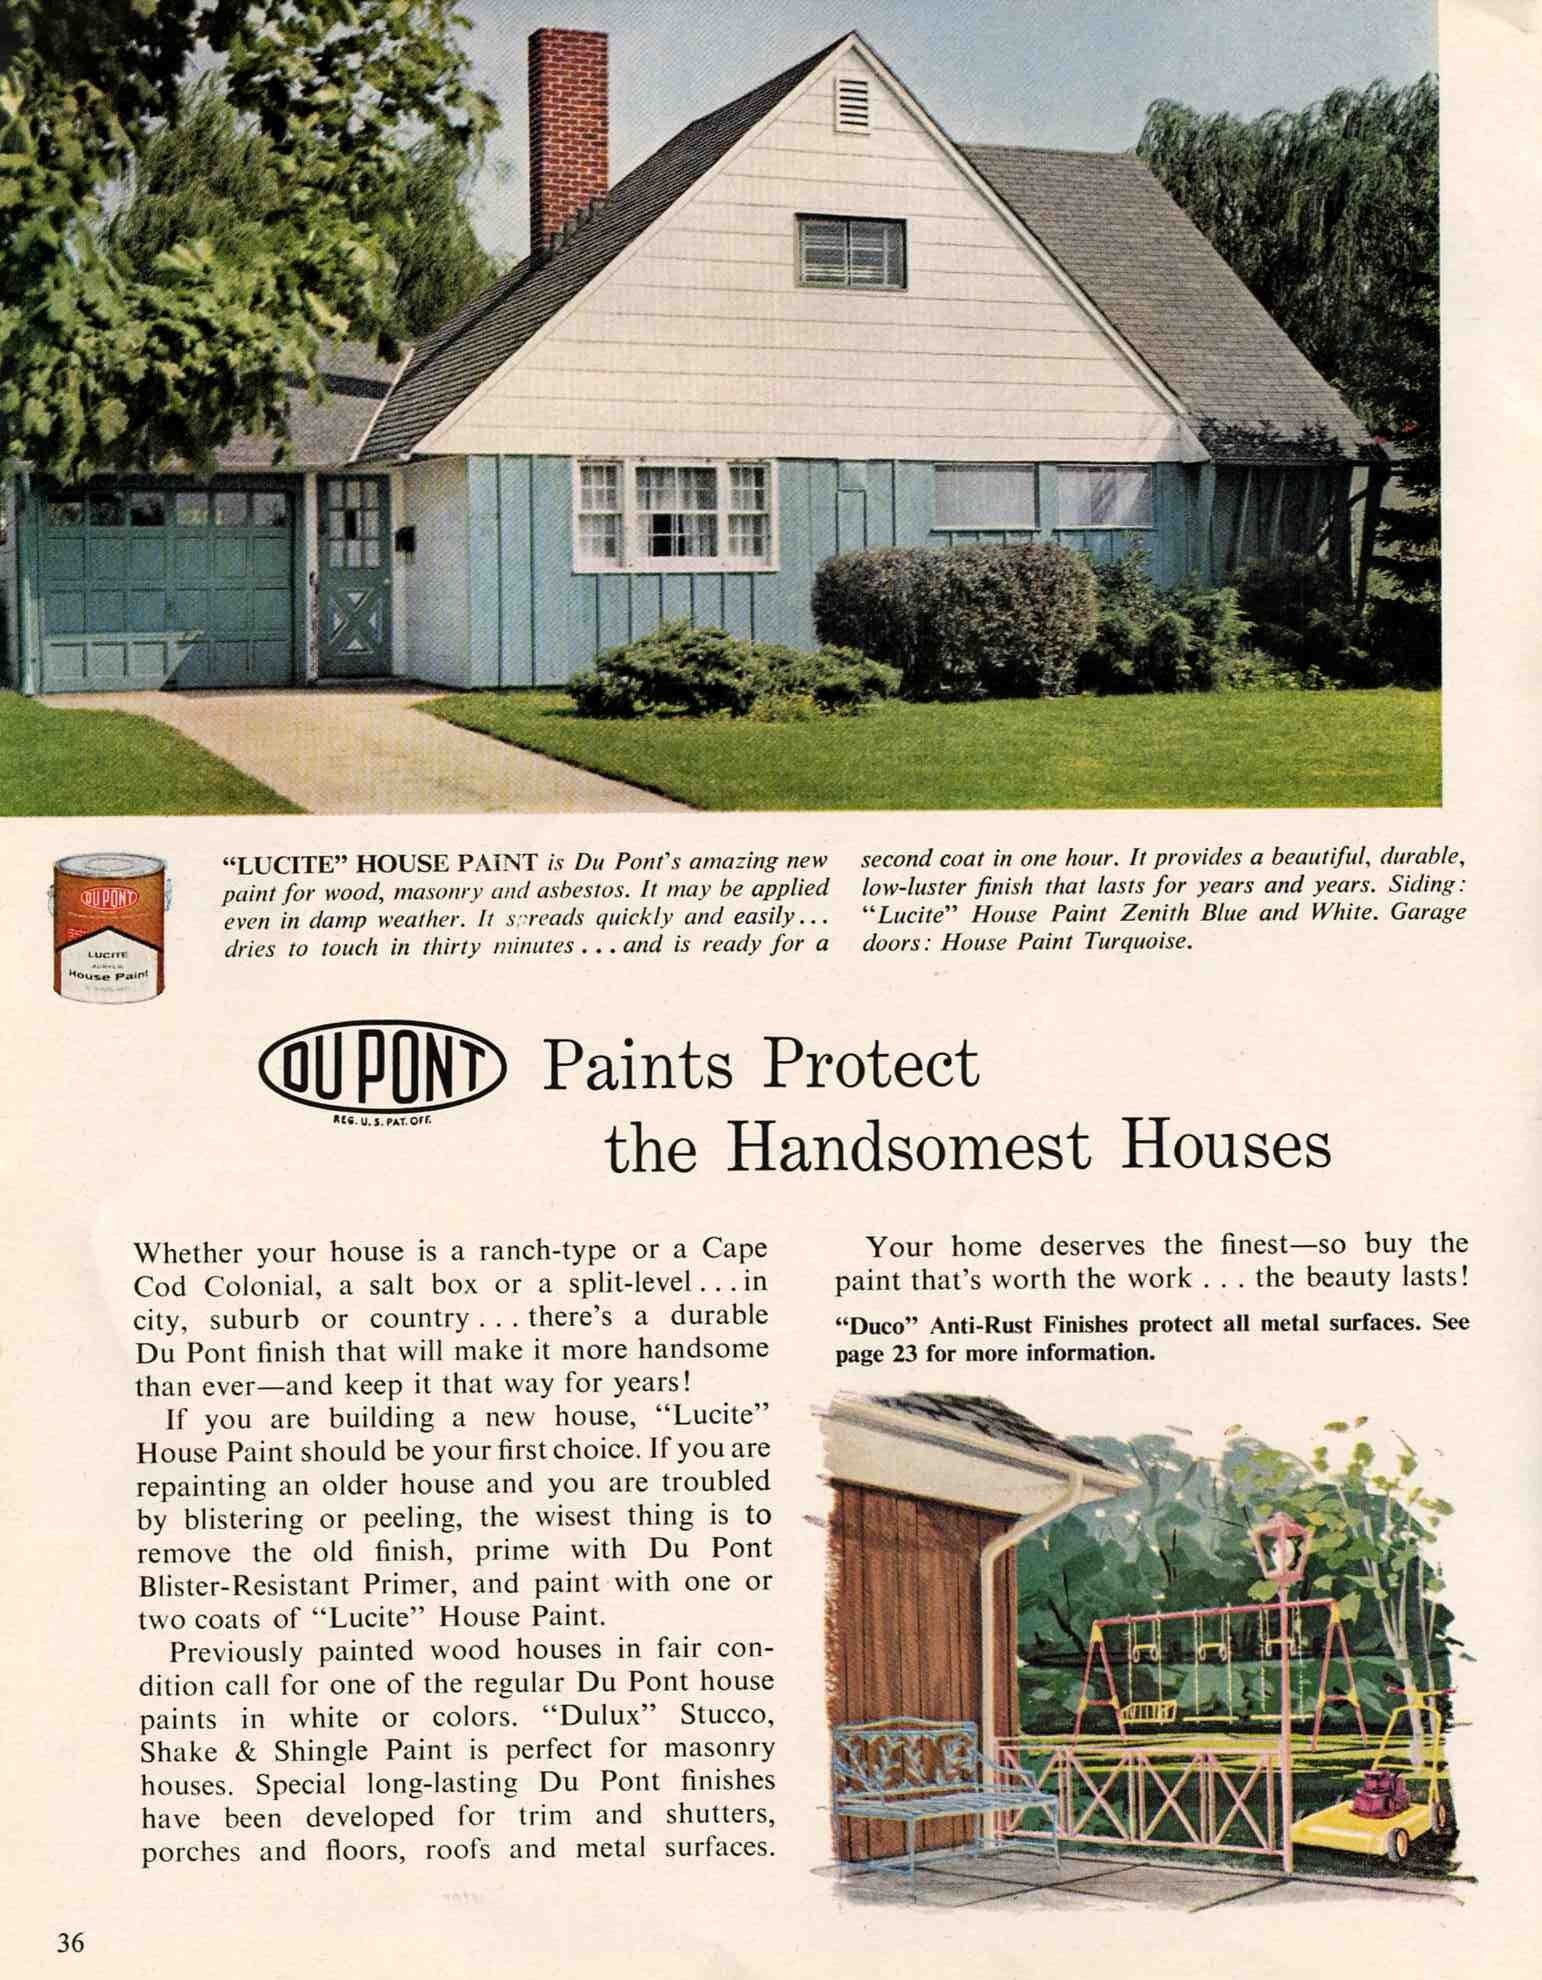 Exterior house color ideas for capes - 1960 Exterior Colors For A Cape Cod Colonial